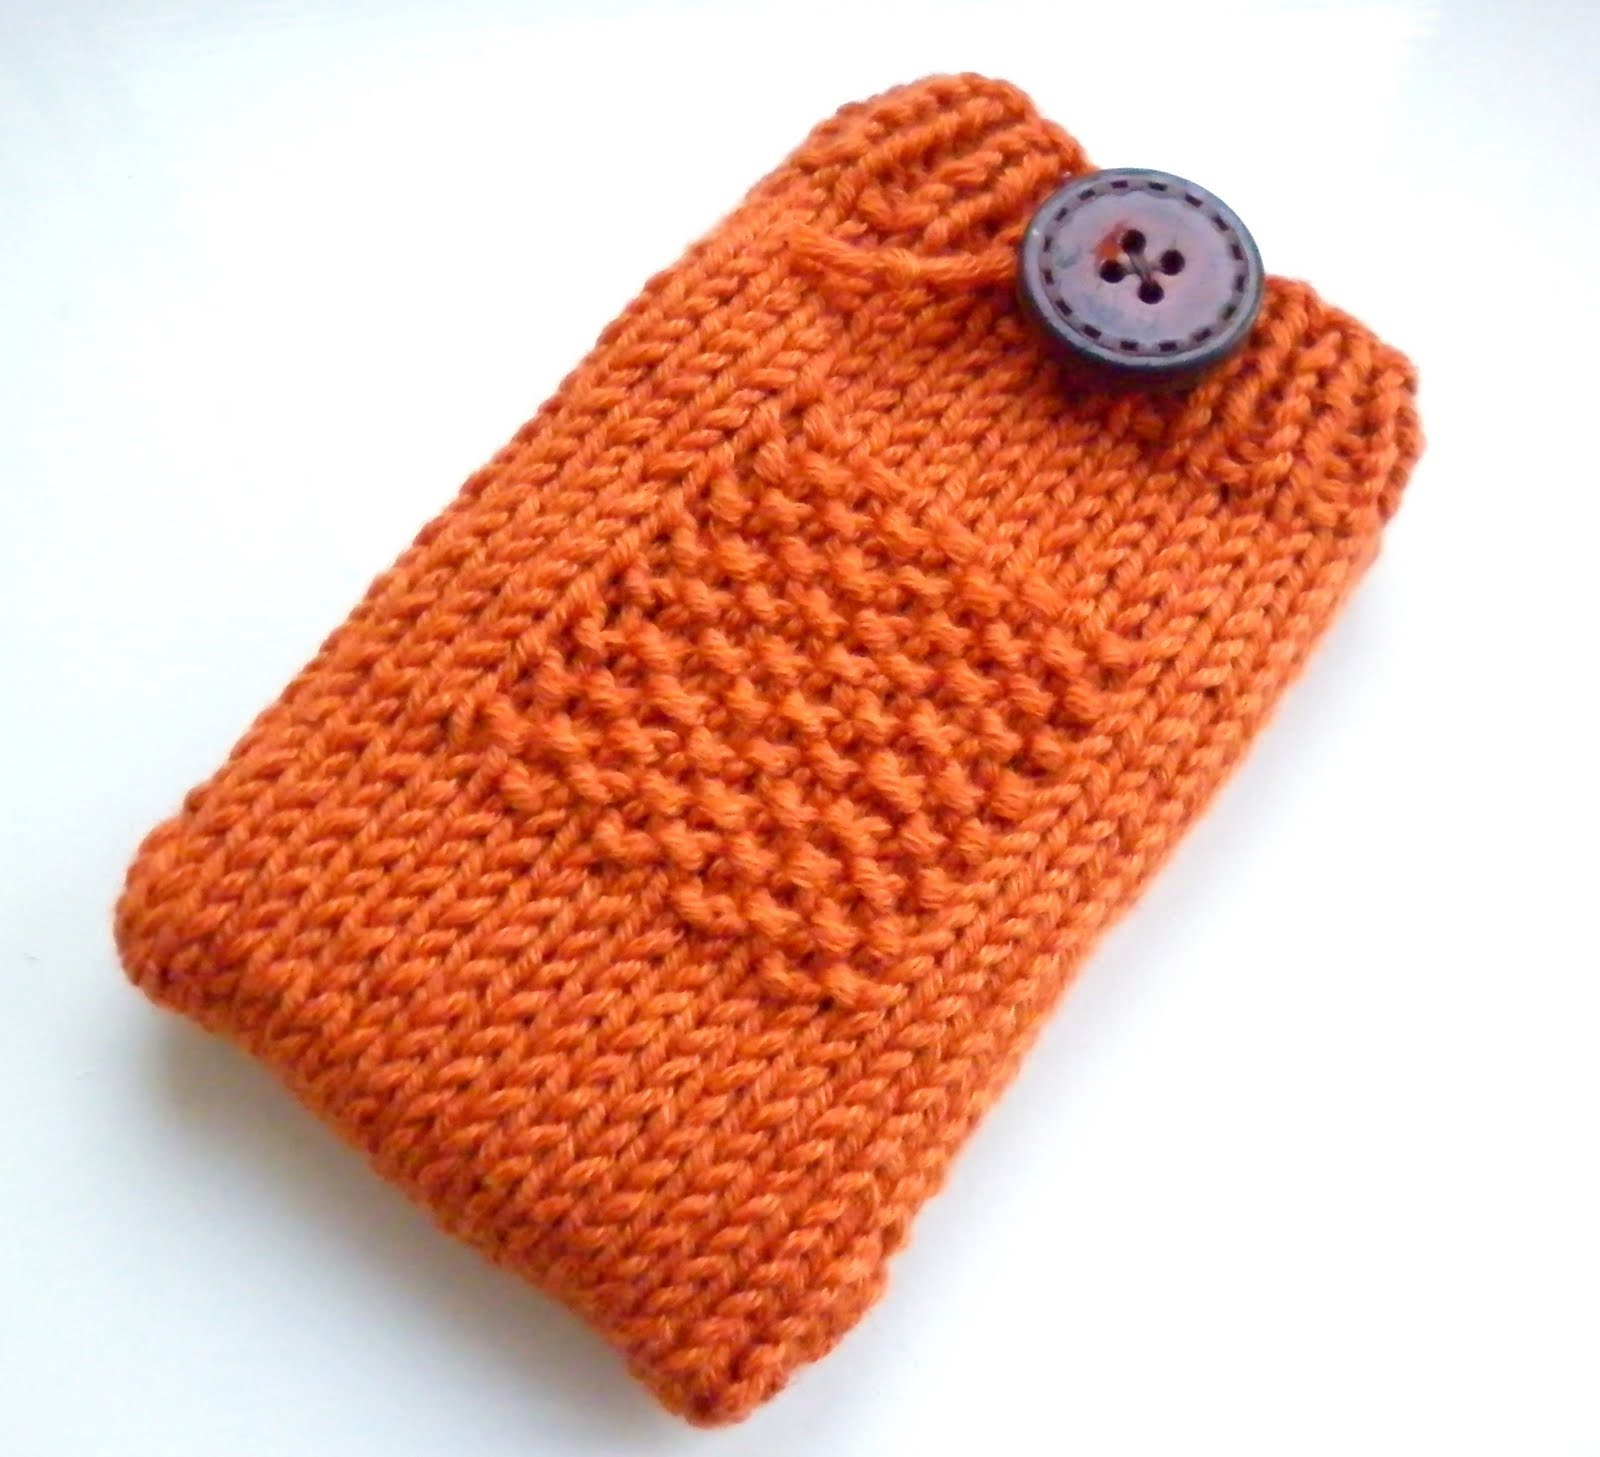 The Wool Nest: Free Knitting Pattern #2 - Gadget Cosy